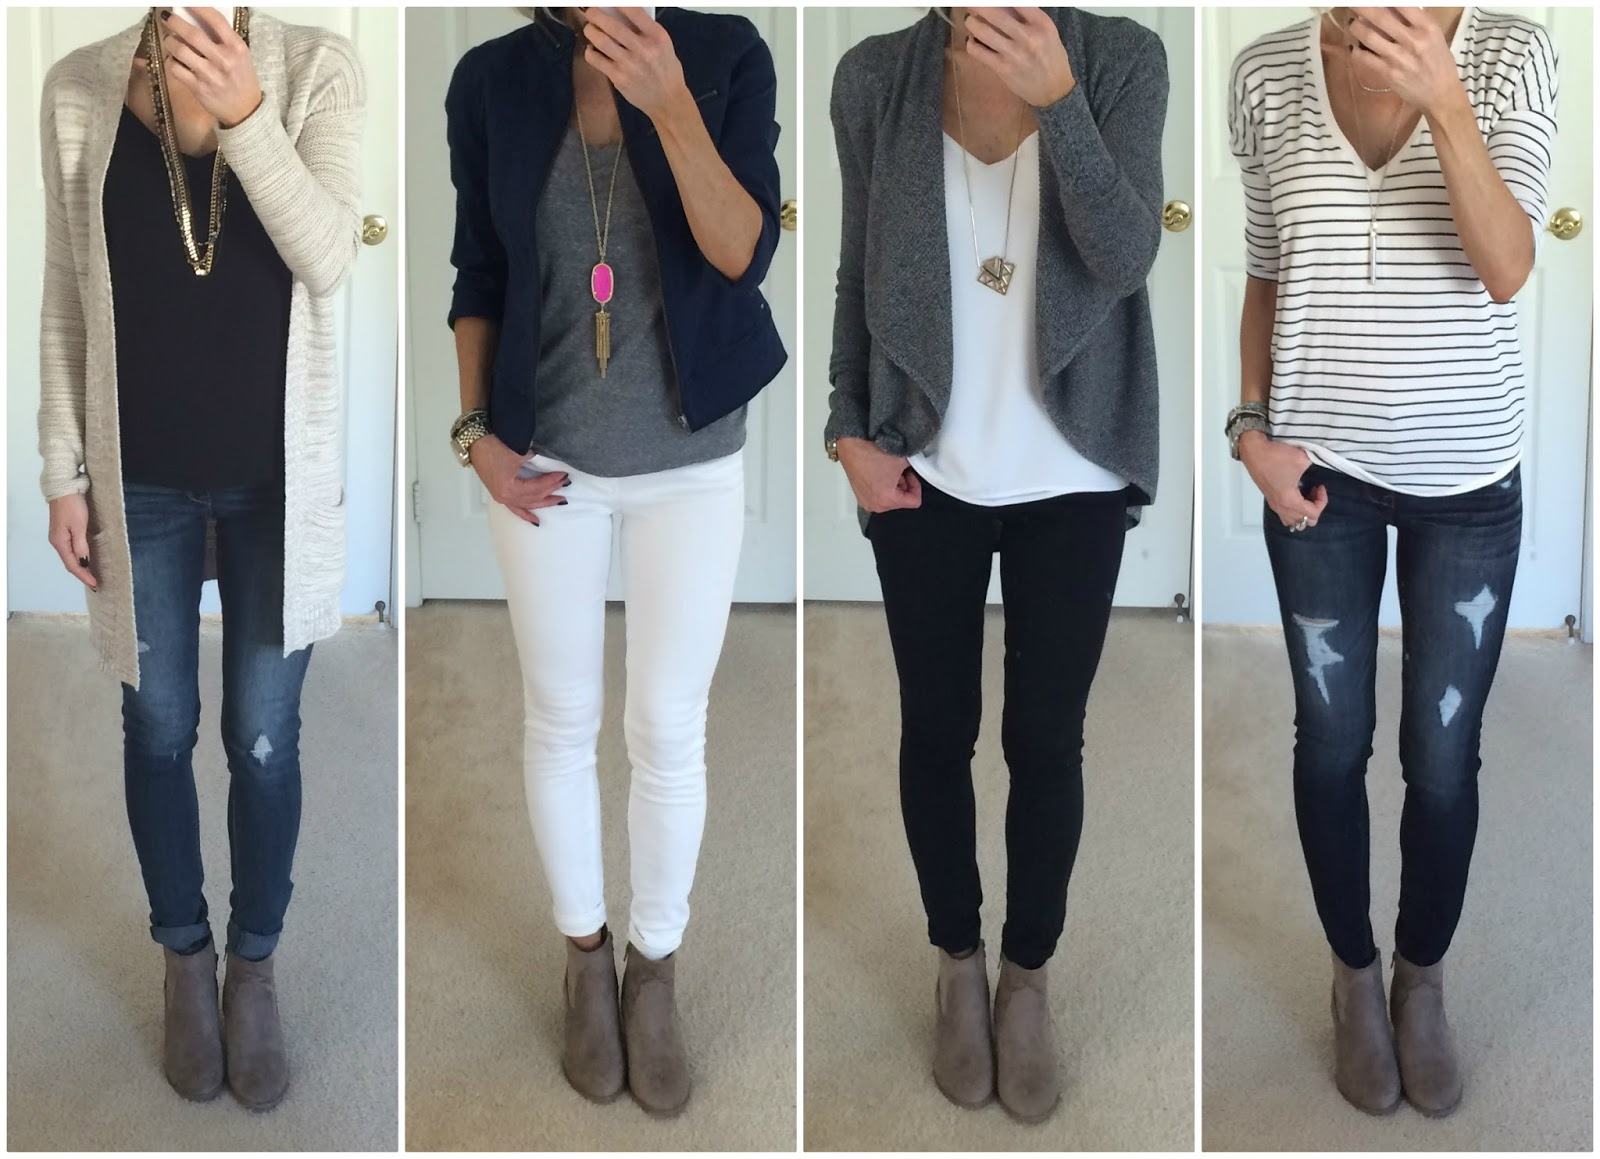 Outfits On Daily 12916